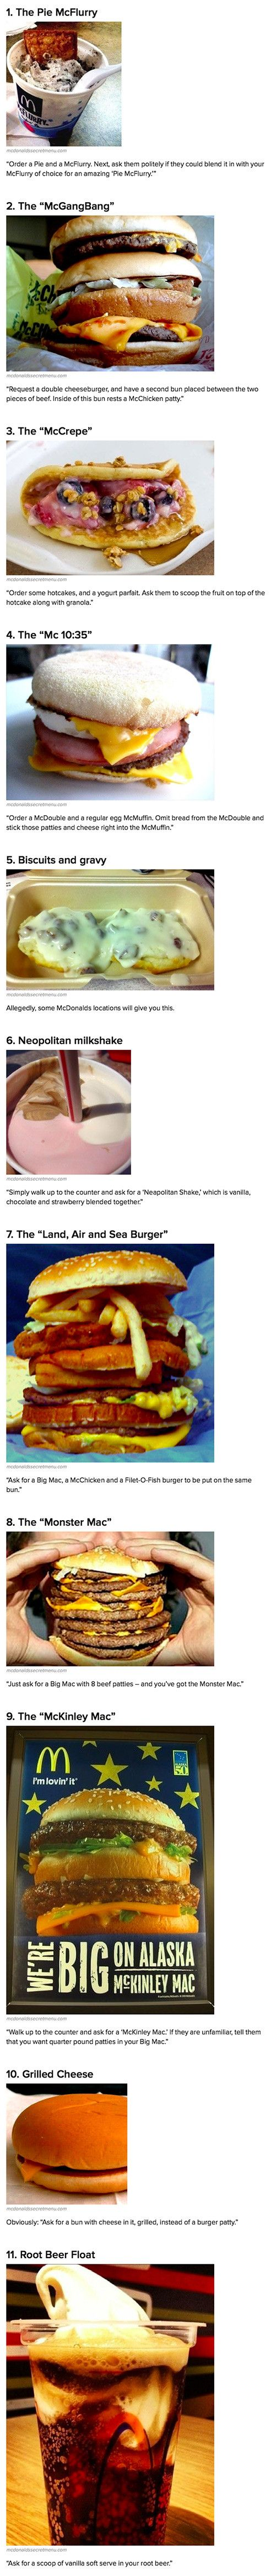 Here are some strange items you can actually order from the McDonalds secret menu. This goes to the WOW board for the 8-patty Big Mac and the land sea thing--